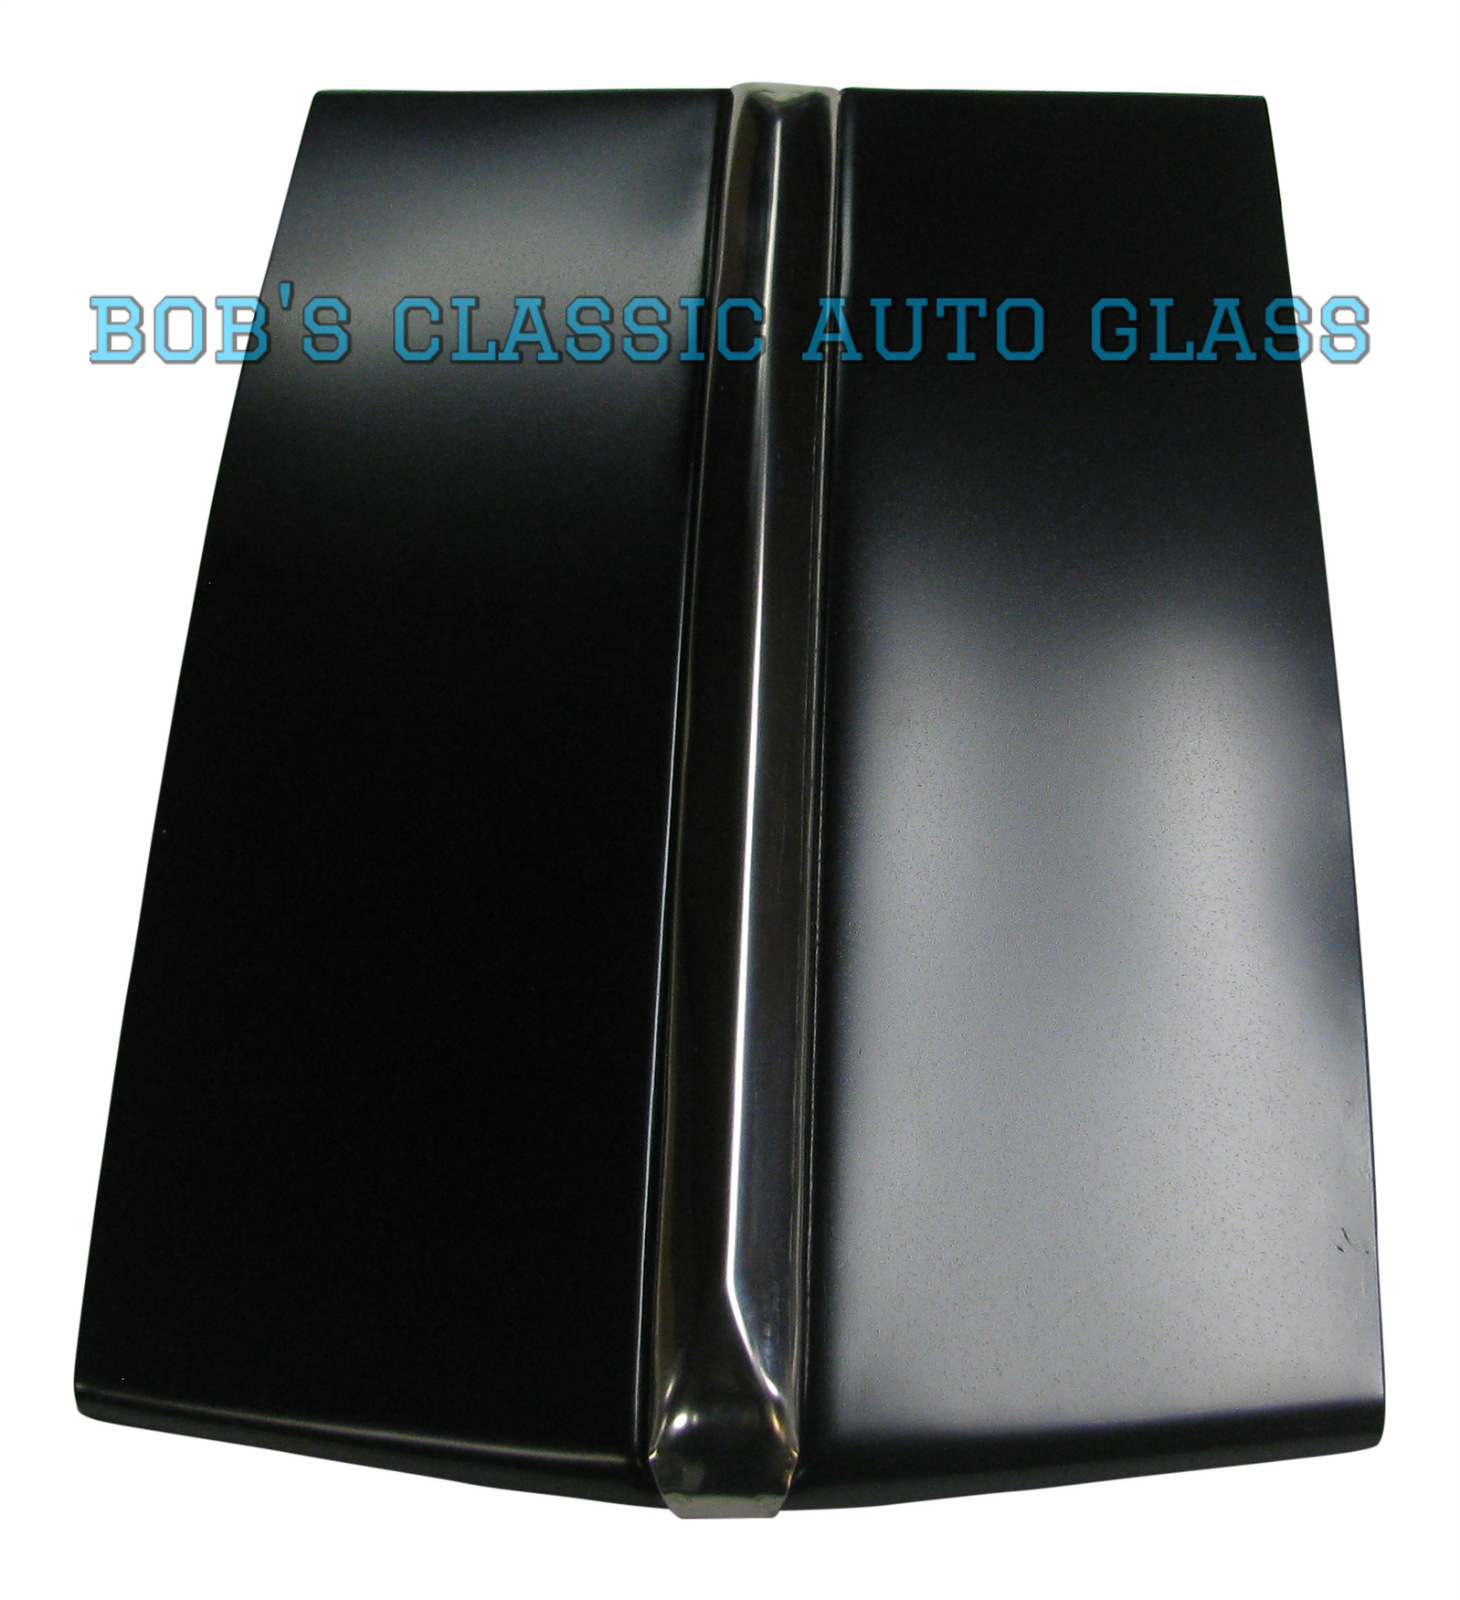 1948 1953 Chevrolet Gmc Truck Fulton Visor Exterior Windshield Sunvisor Chevy Bob S Classic Auto Glass New Auto Glass Windows Windshields Rubber Seals For Cars And Trucks From 1920 To Today